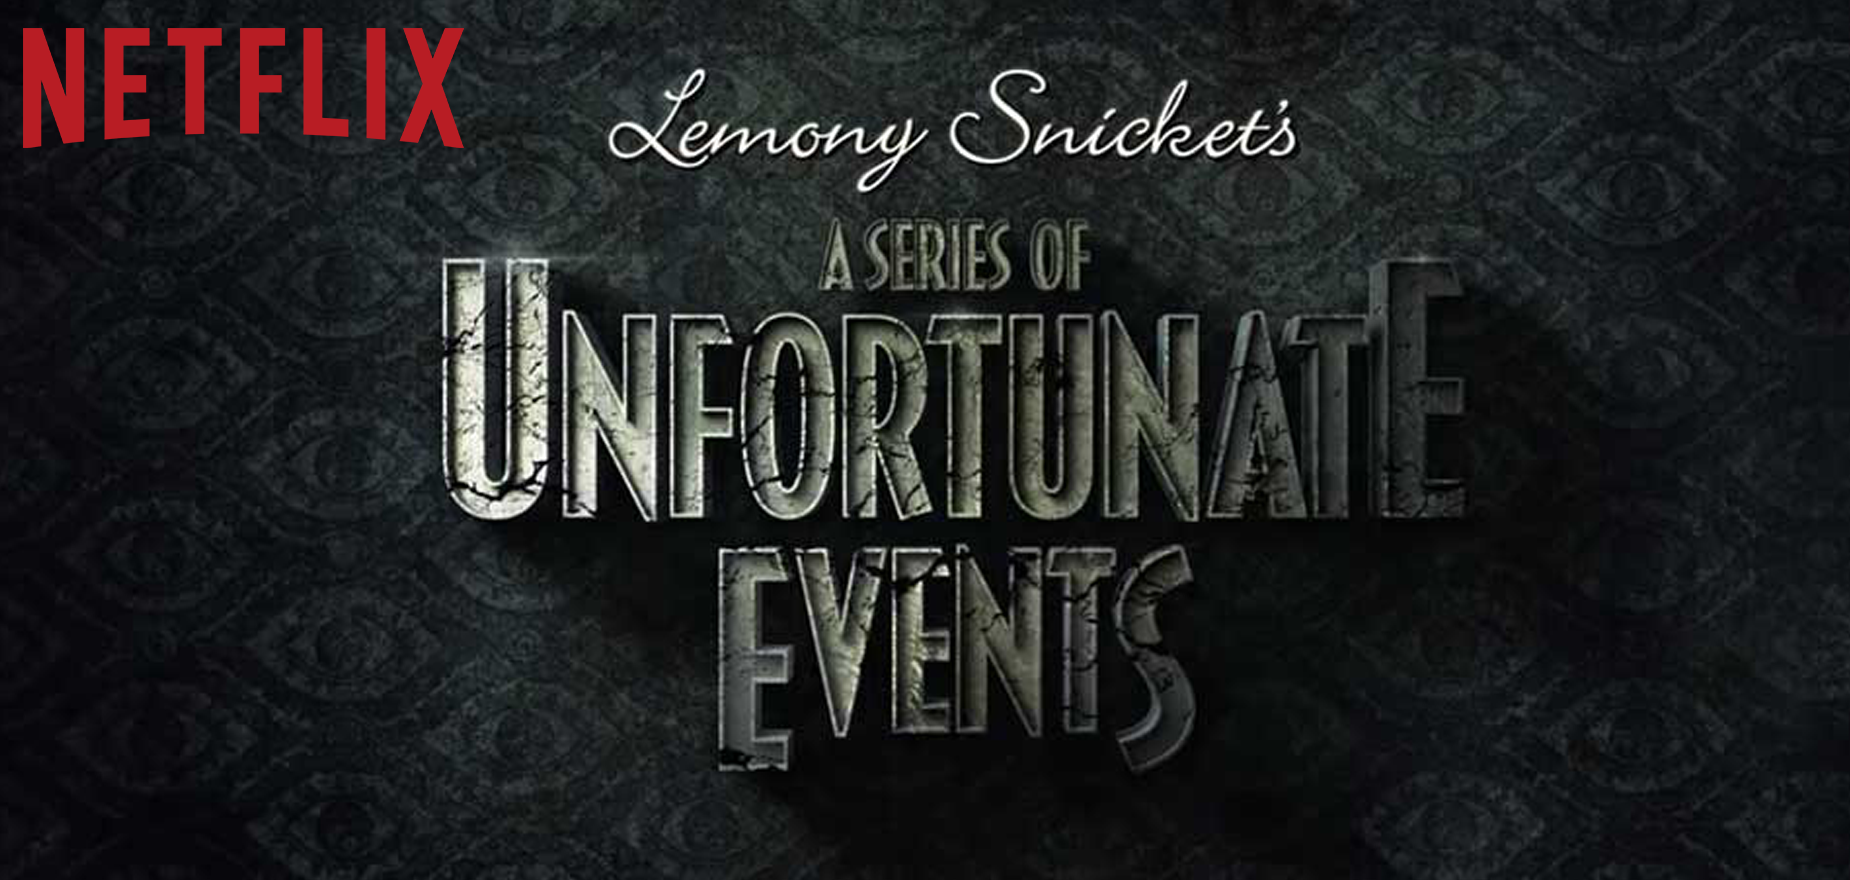 A Series of Unfortunate Events - Netflix